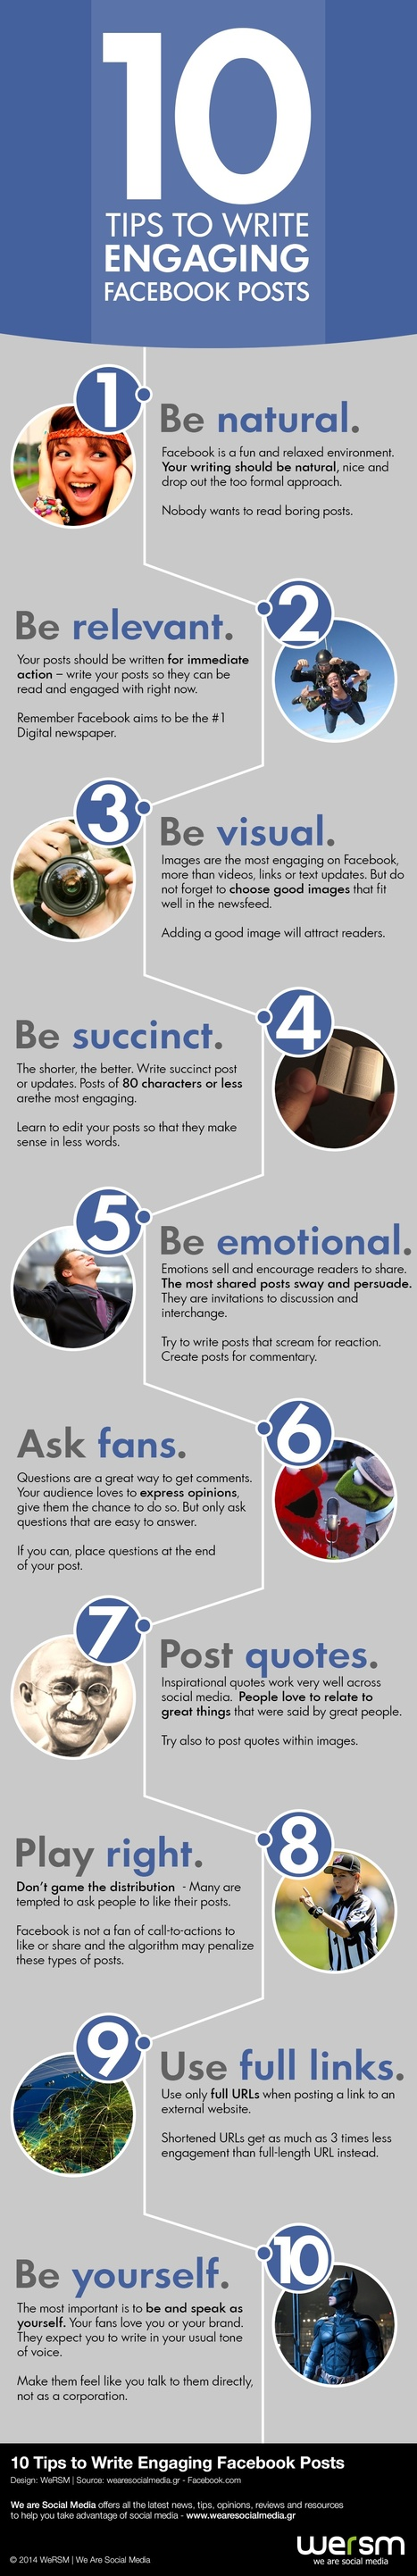 10 Tips to Maximize Your Facebook Engagement [INFOGRAPHIC] | MarketingHits | Scoop.it